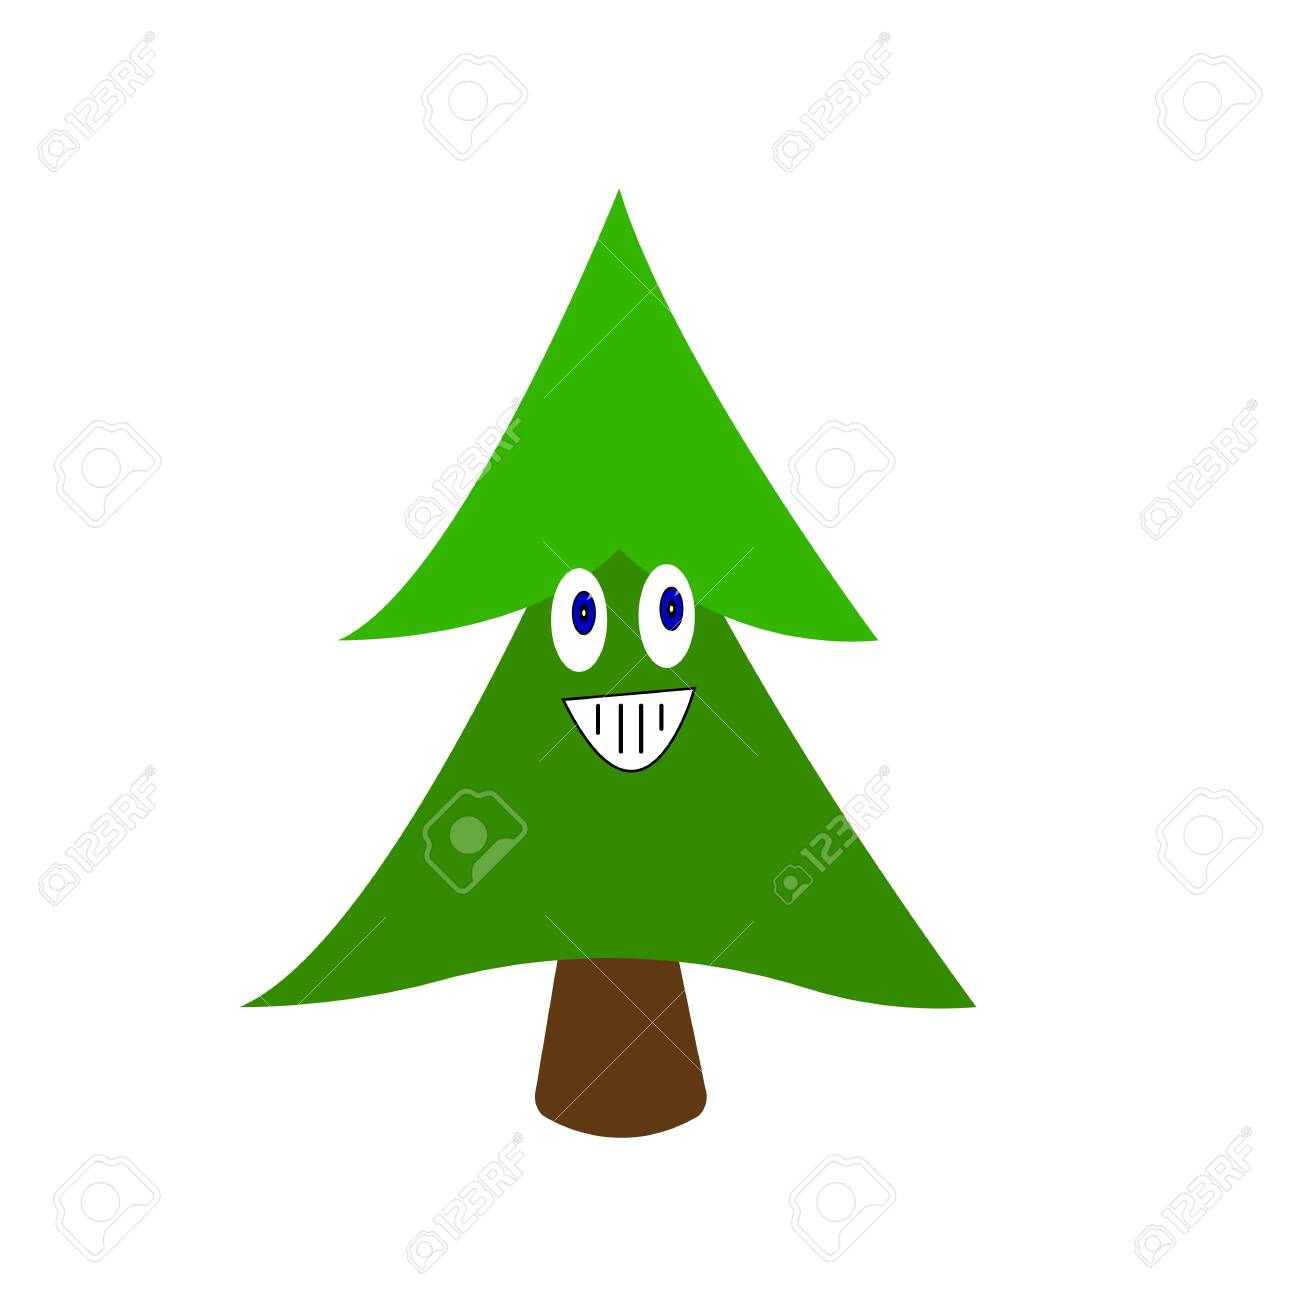 Green Spruce Cartoon Character With Smile And Blue Shining Eyes Royalty Free Cliparts Vectors And Stock Illustration Image 143290845 Find & download free graphic resources for christmas tree cartoon. 123rf com